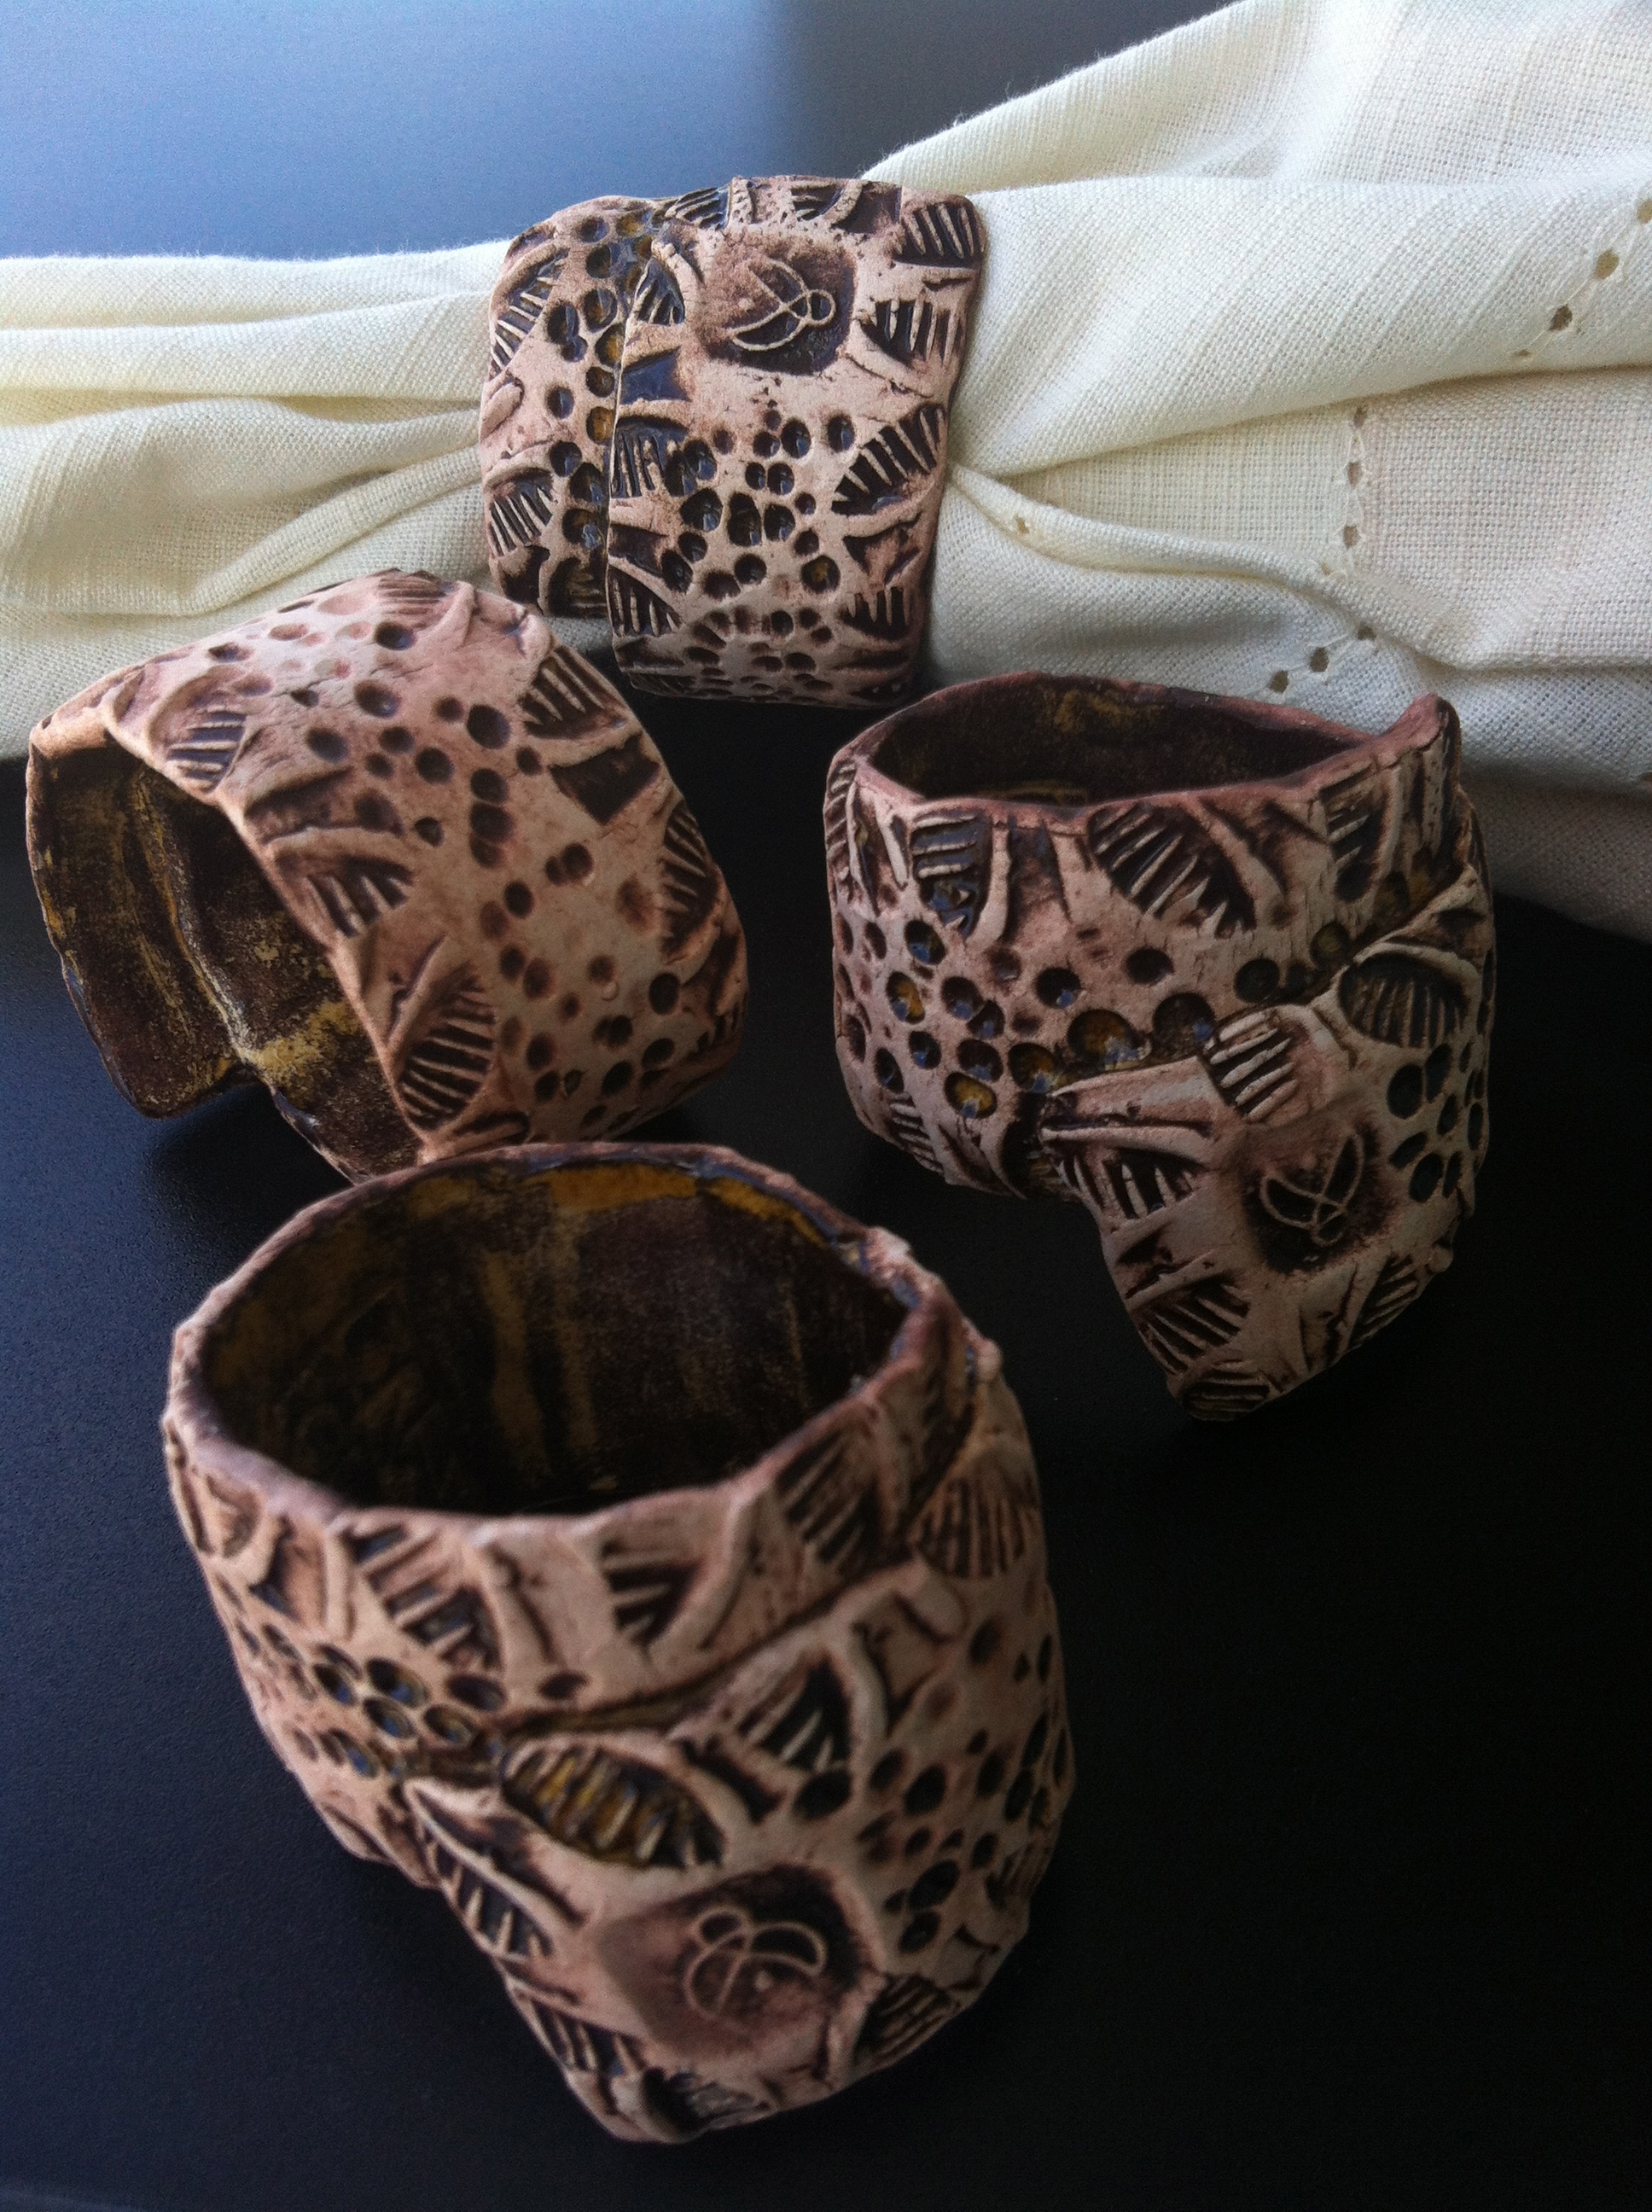 Napkin rings are like jewelry for your table. Dress up your next gathering! Or give them as a gift.